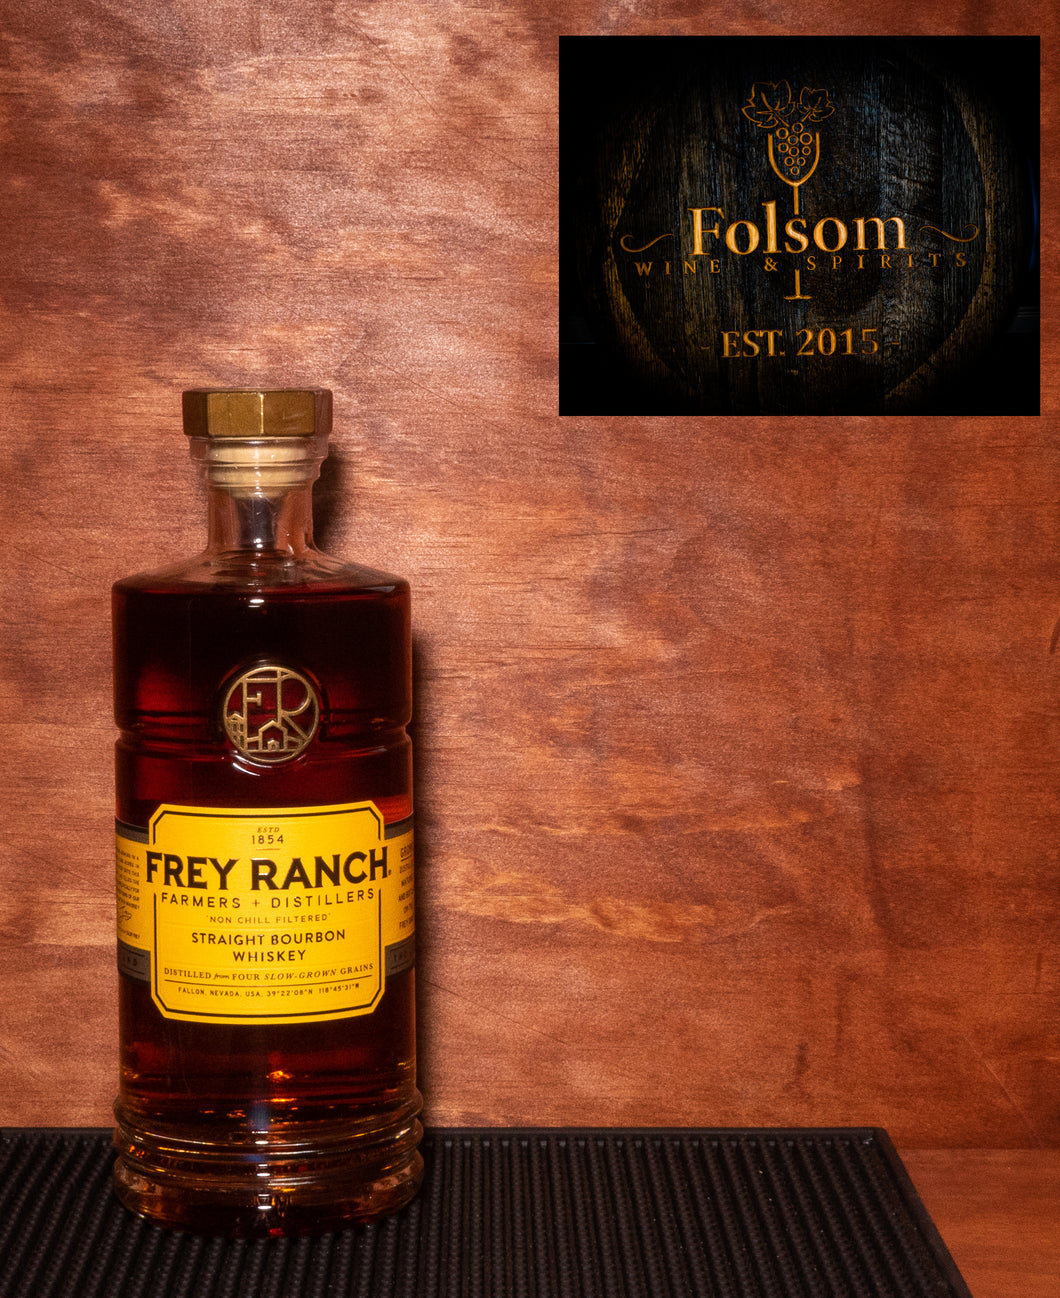 FREY RANCH BOURBON